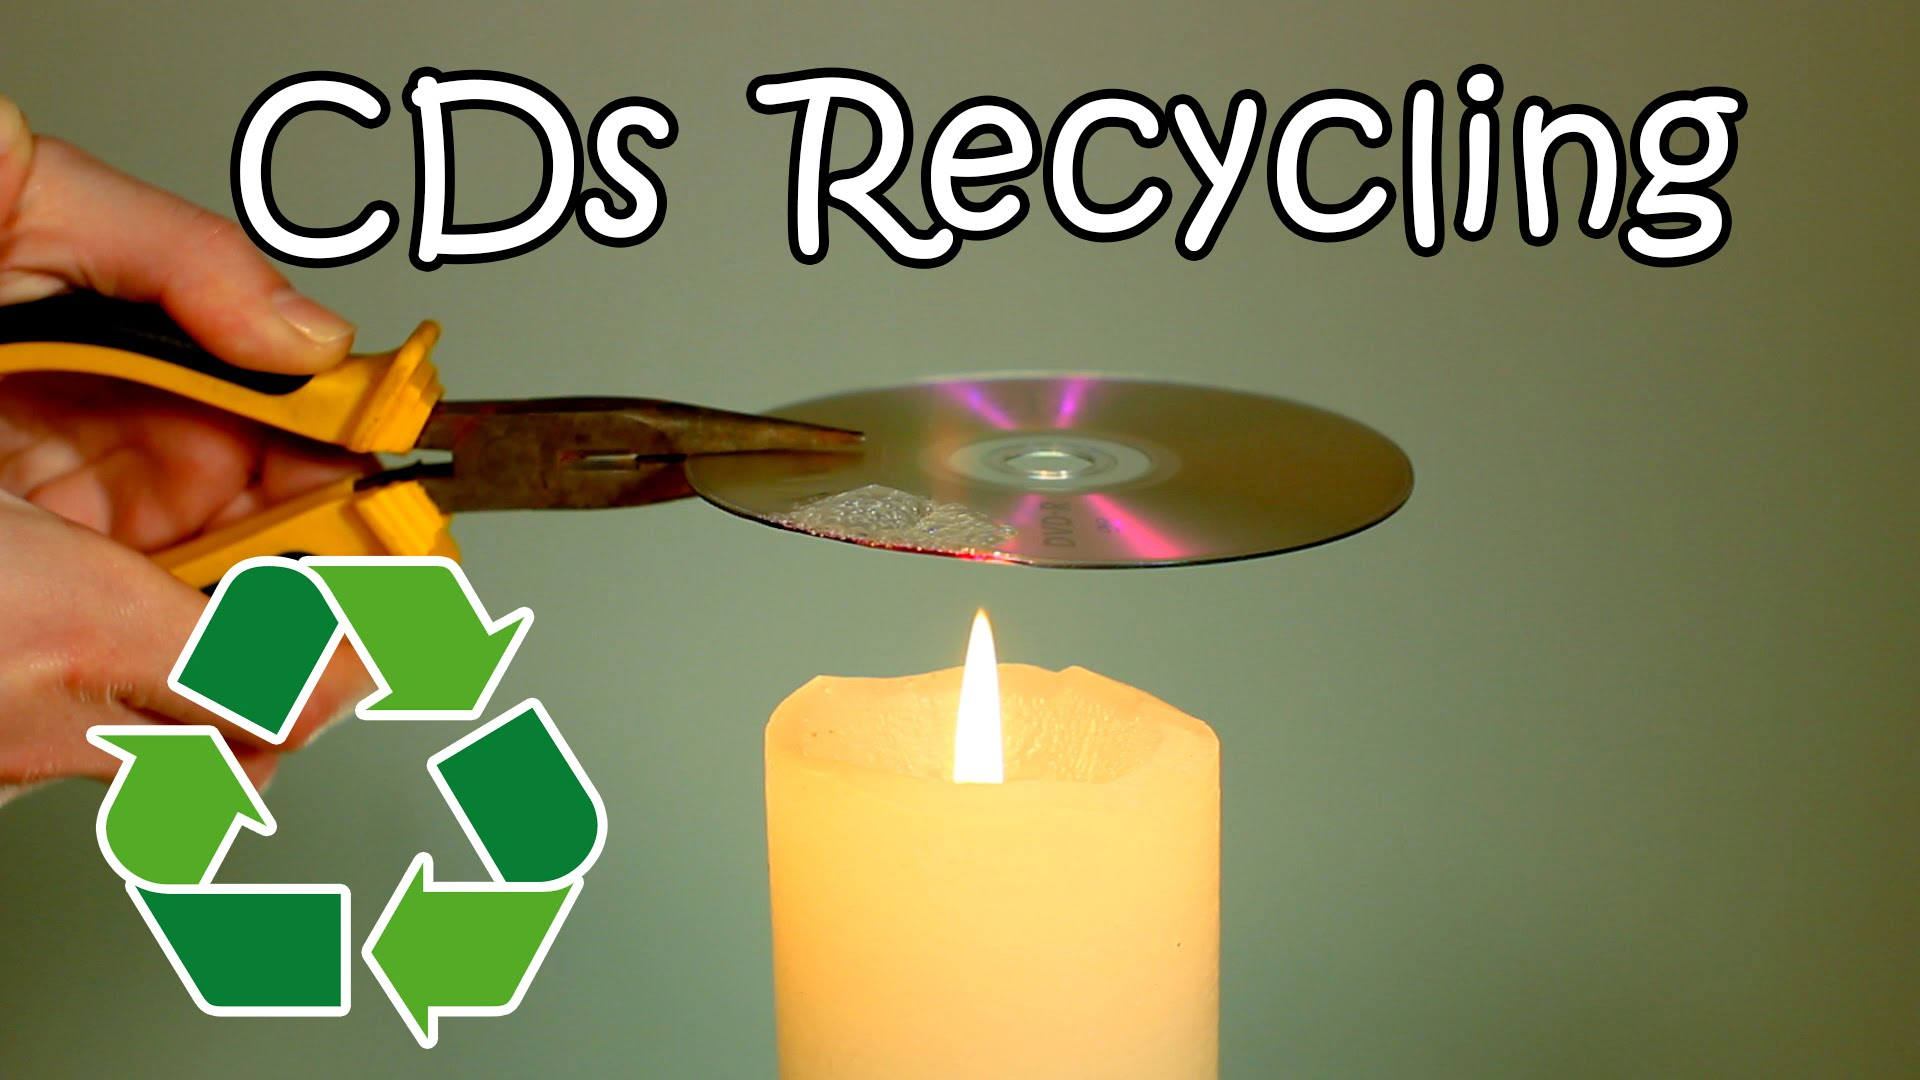 CDs-and-DVDs-Recycling-How-To-Recycle-Your-Old-CDs-Into-Useful-Stuff